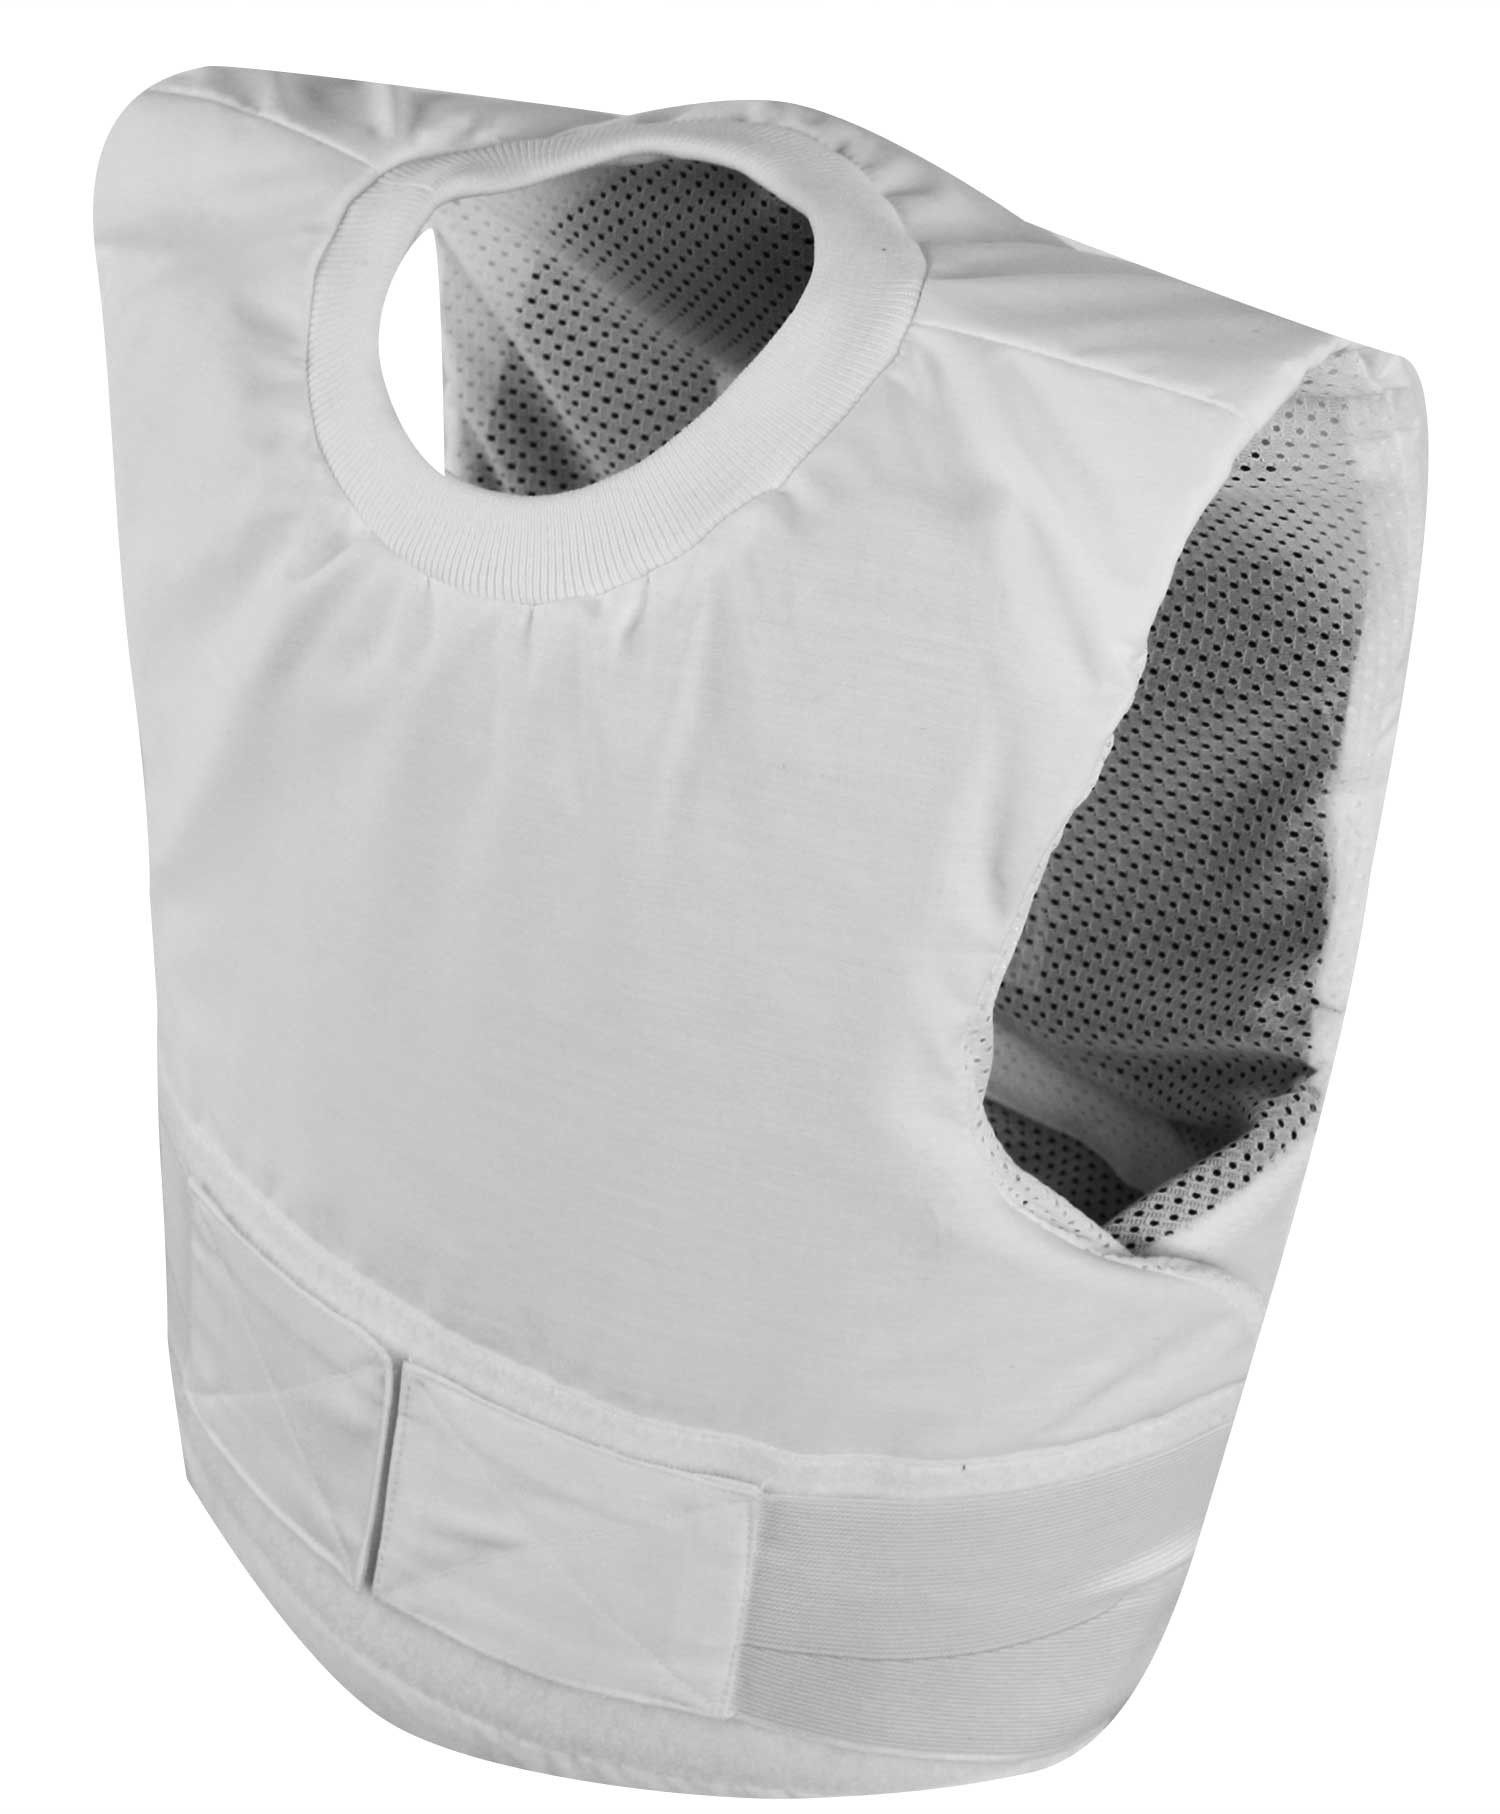 Armor Corr Concealable Stabiiia Vest New Kevlar Bullet >> Coolmax White Ballistic Level 3a Stab Level 2 Spike Level 2